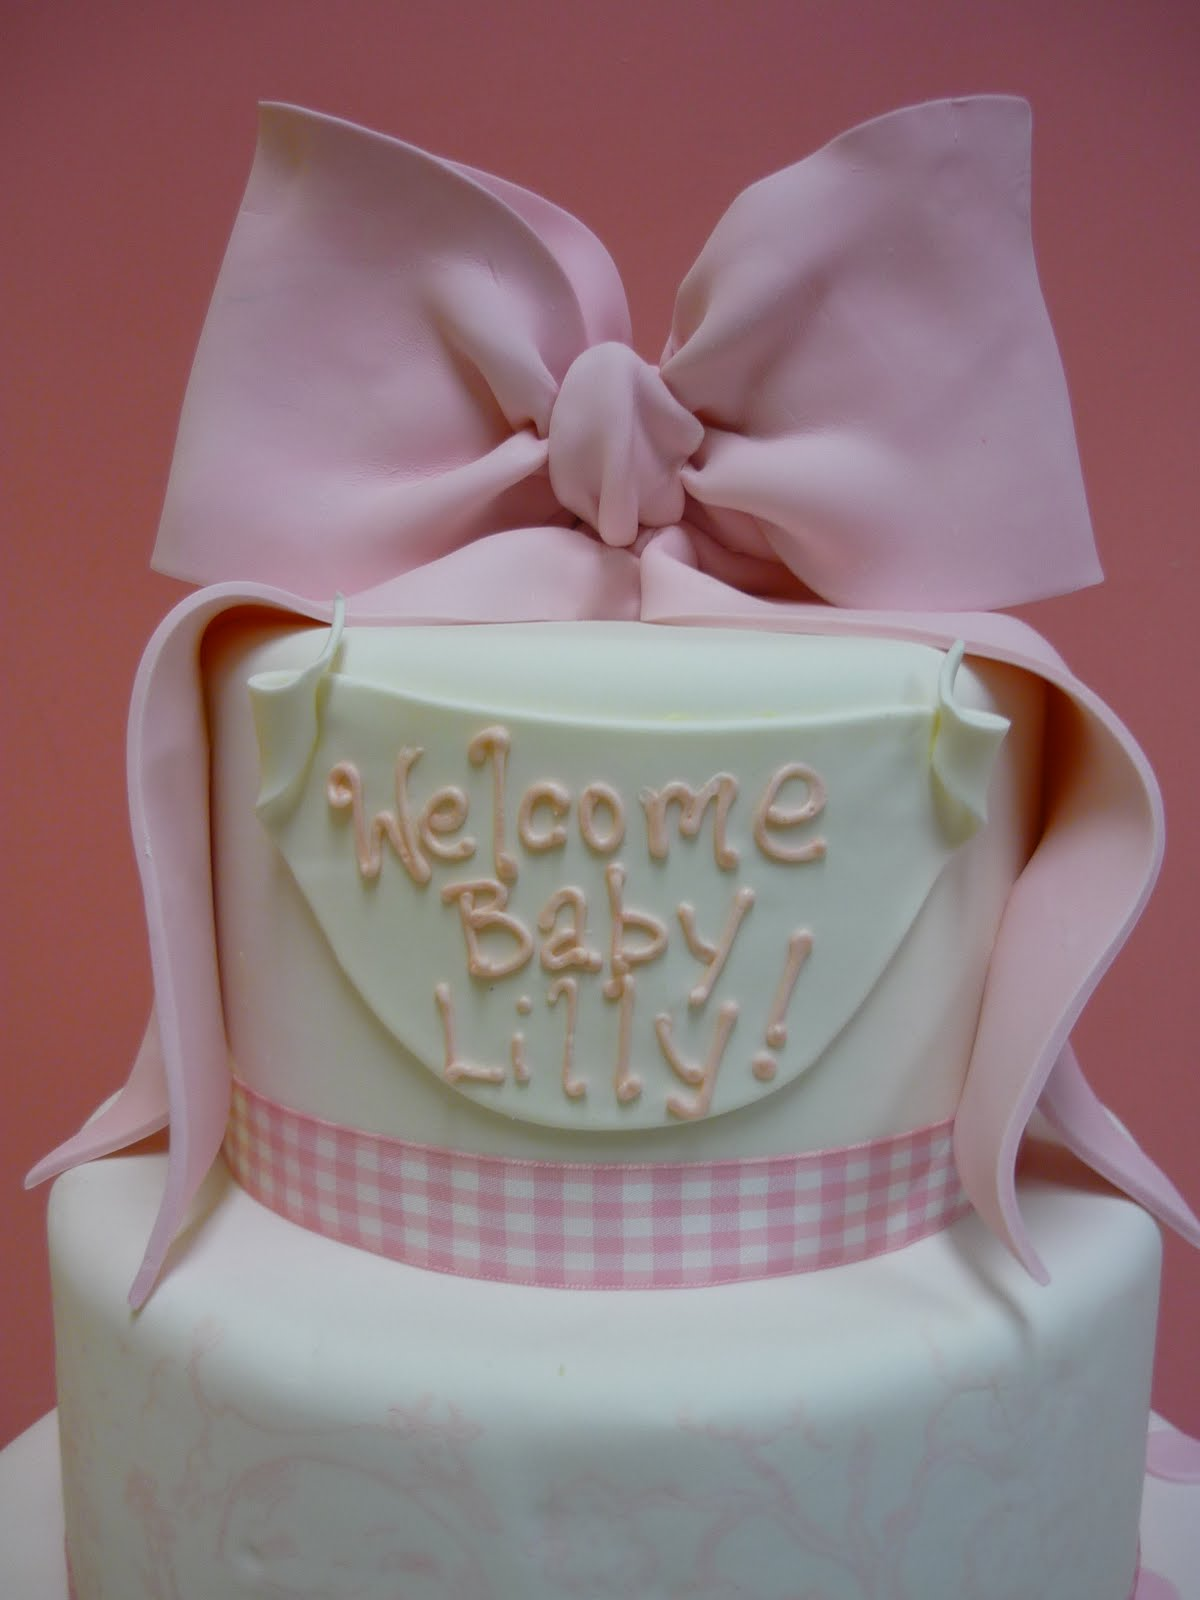 Cake Design For Baby Girl : Delicious Baby Girl Cakes Baby Girl Cakes Ideas Food ...